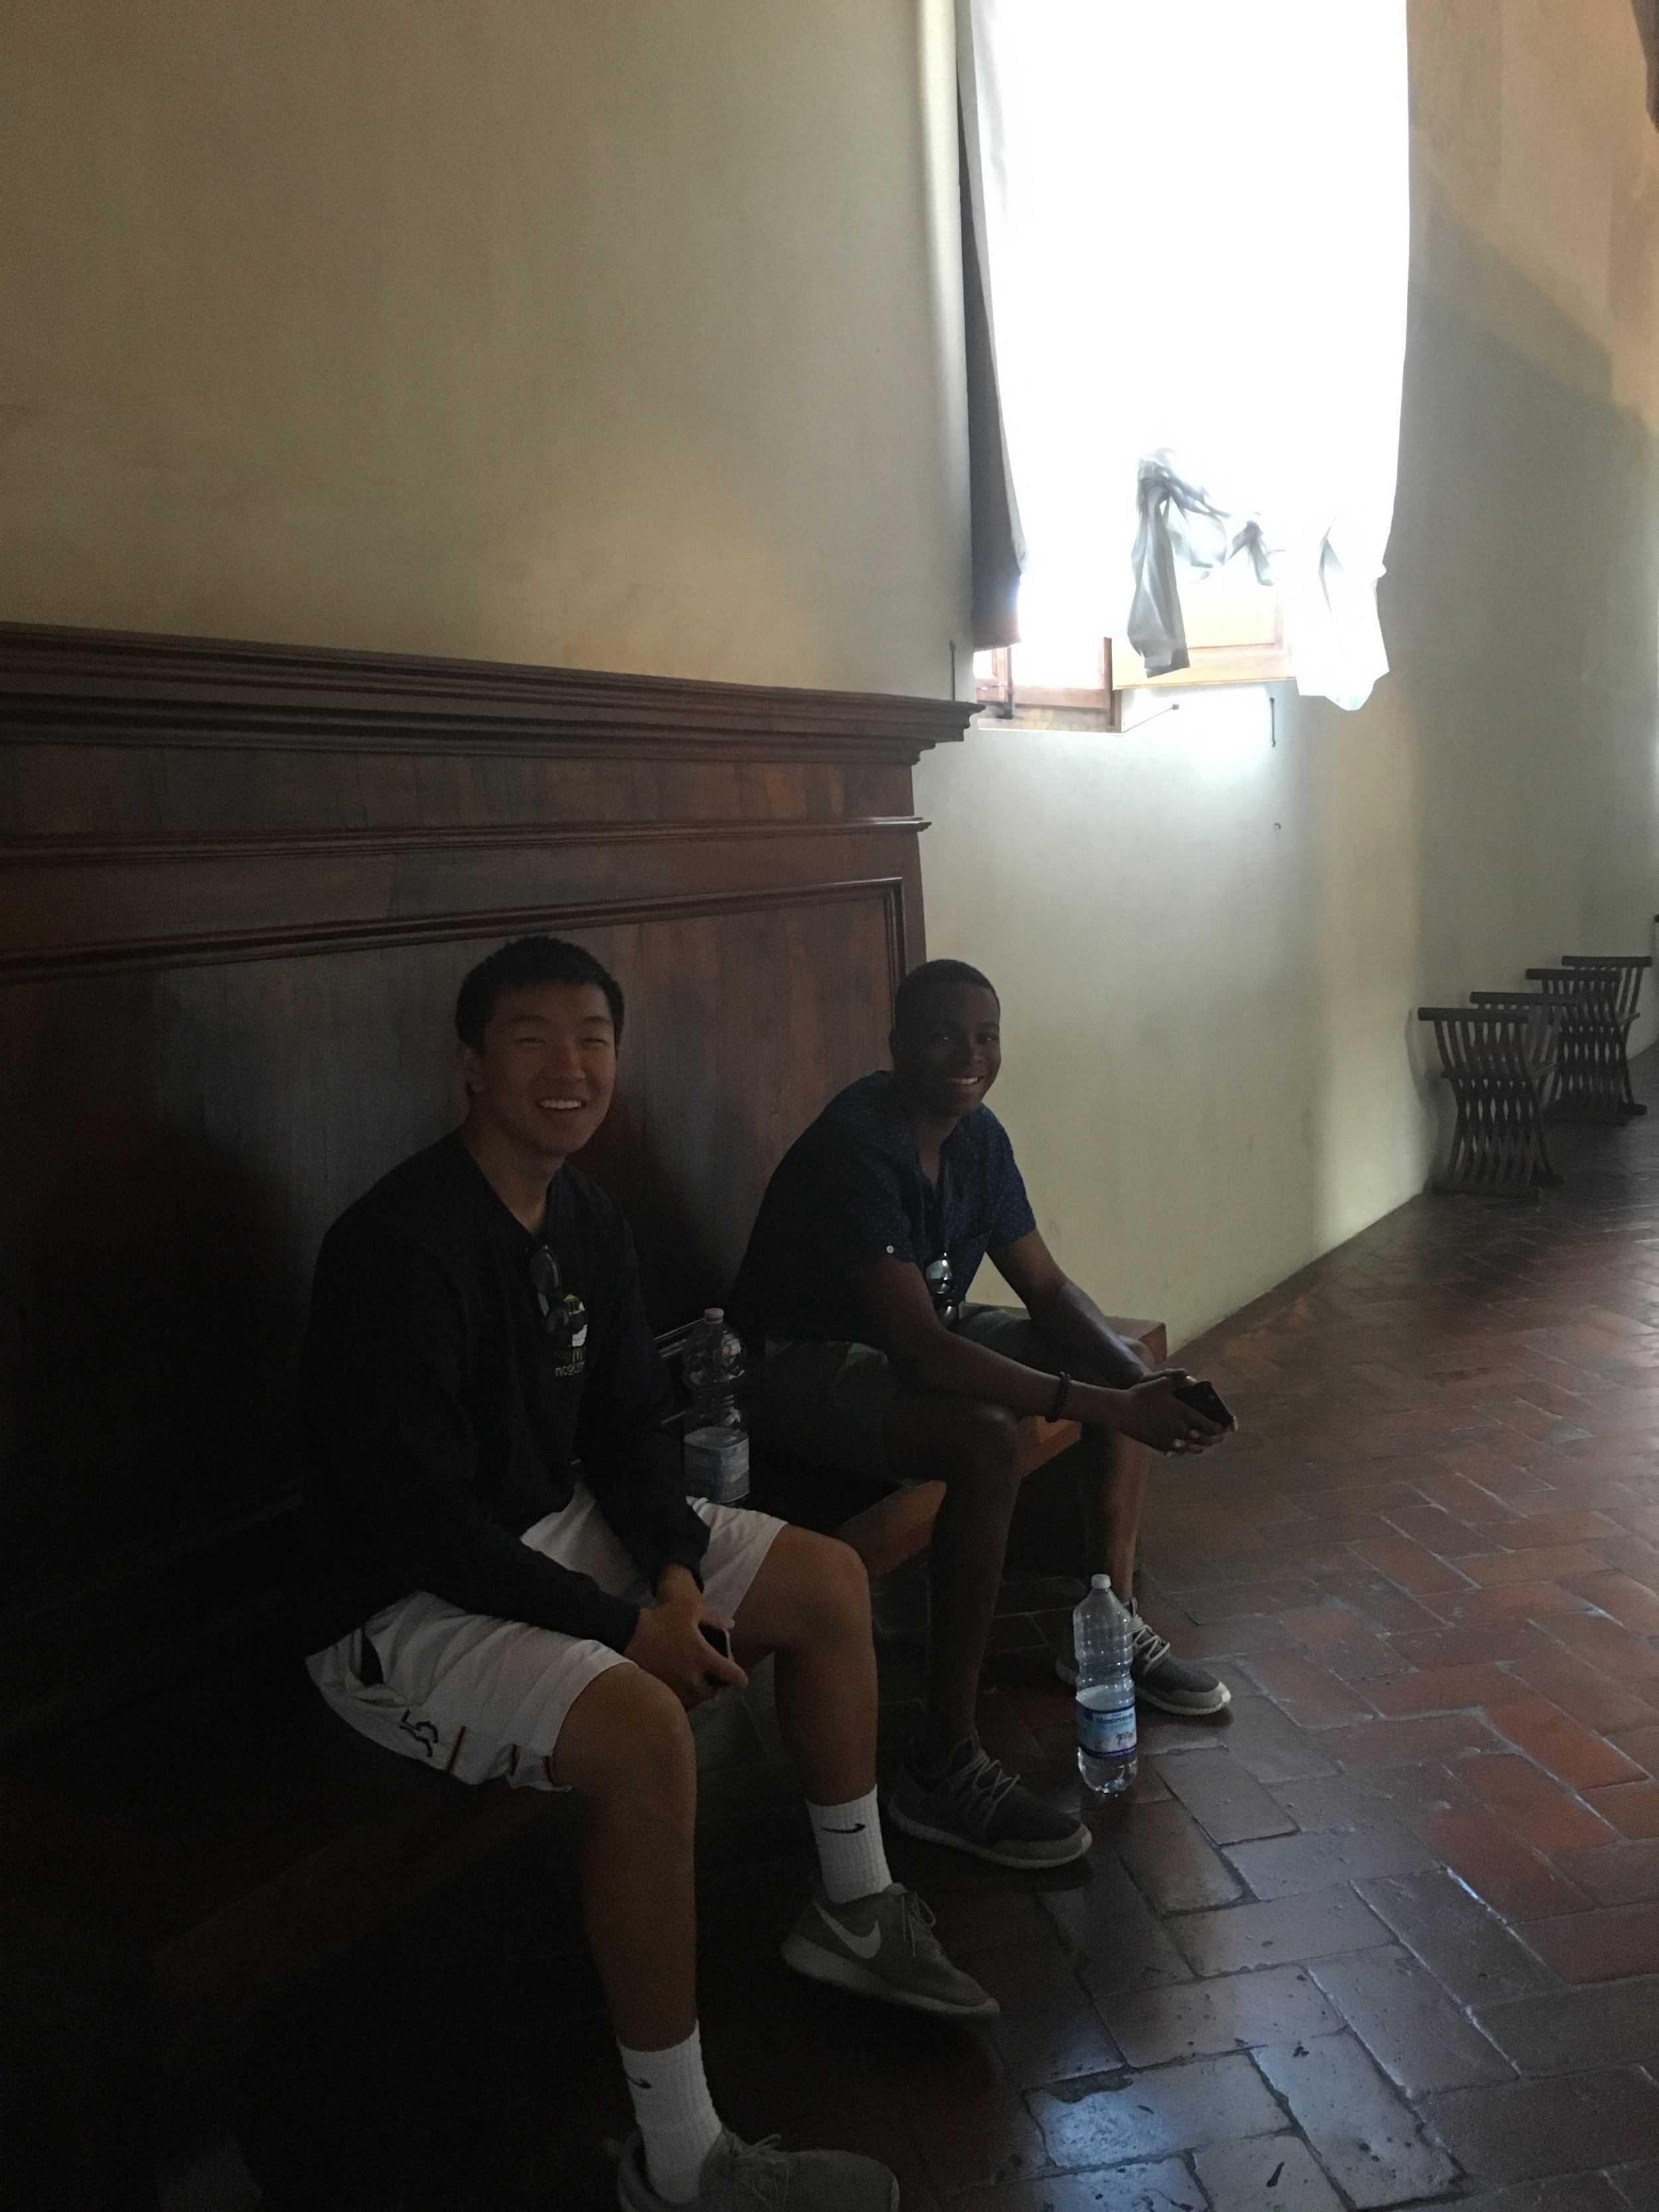 Michael and Isaiah outside the monks' cels at San Marco